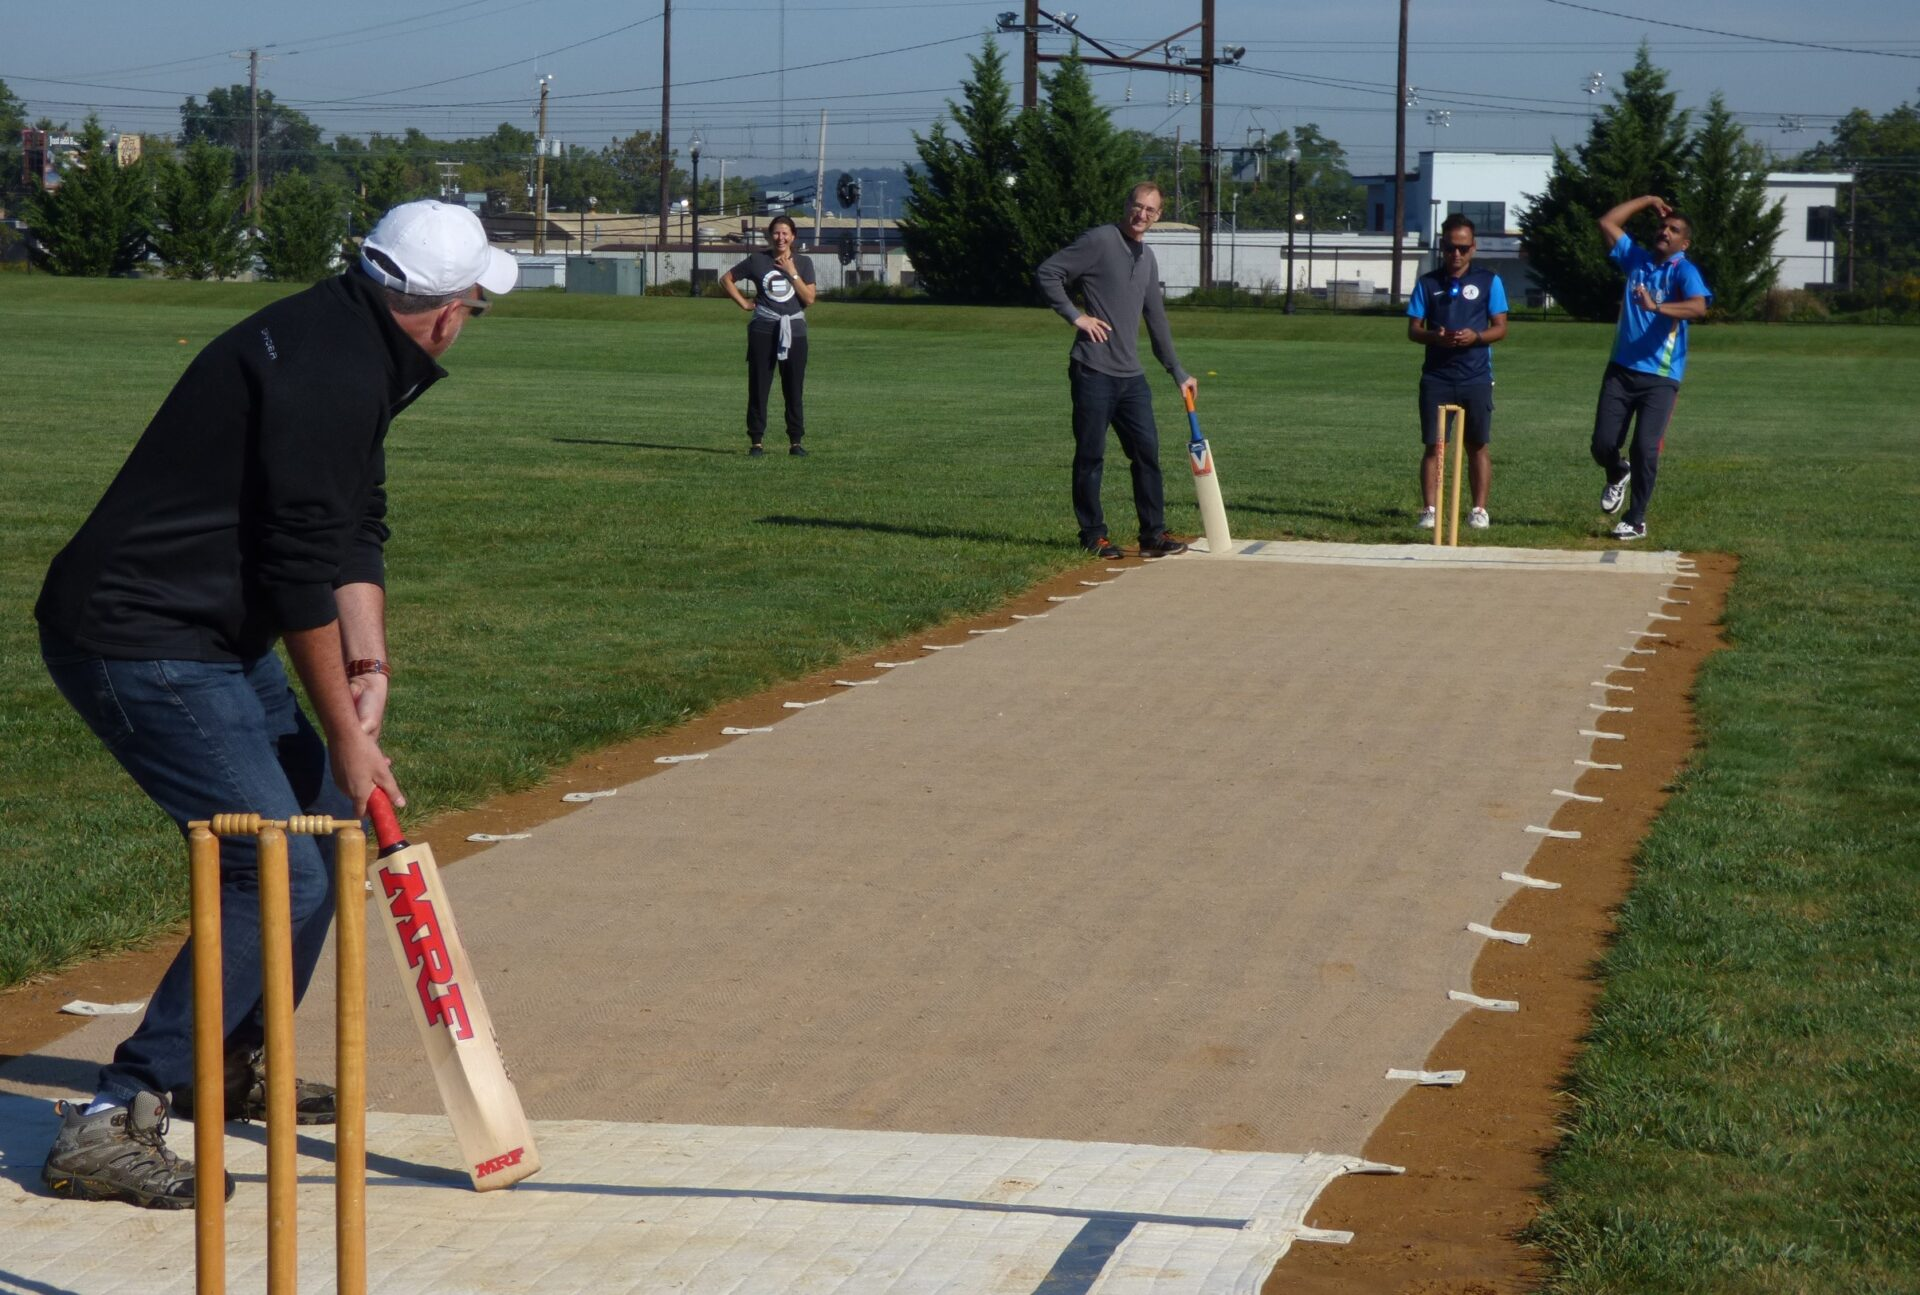 Club, community welcome Lancaster's first cricket pitch